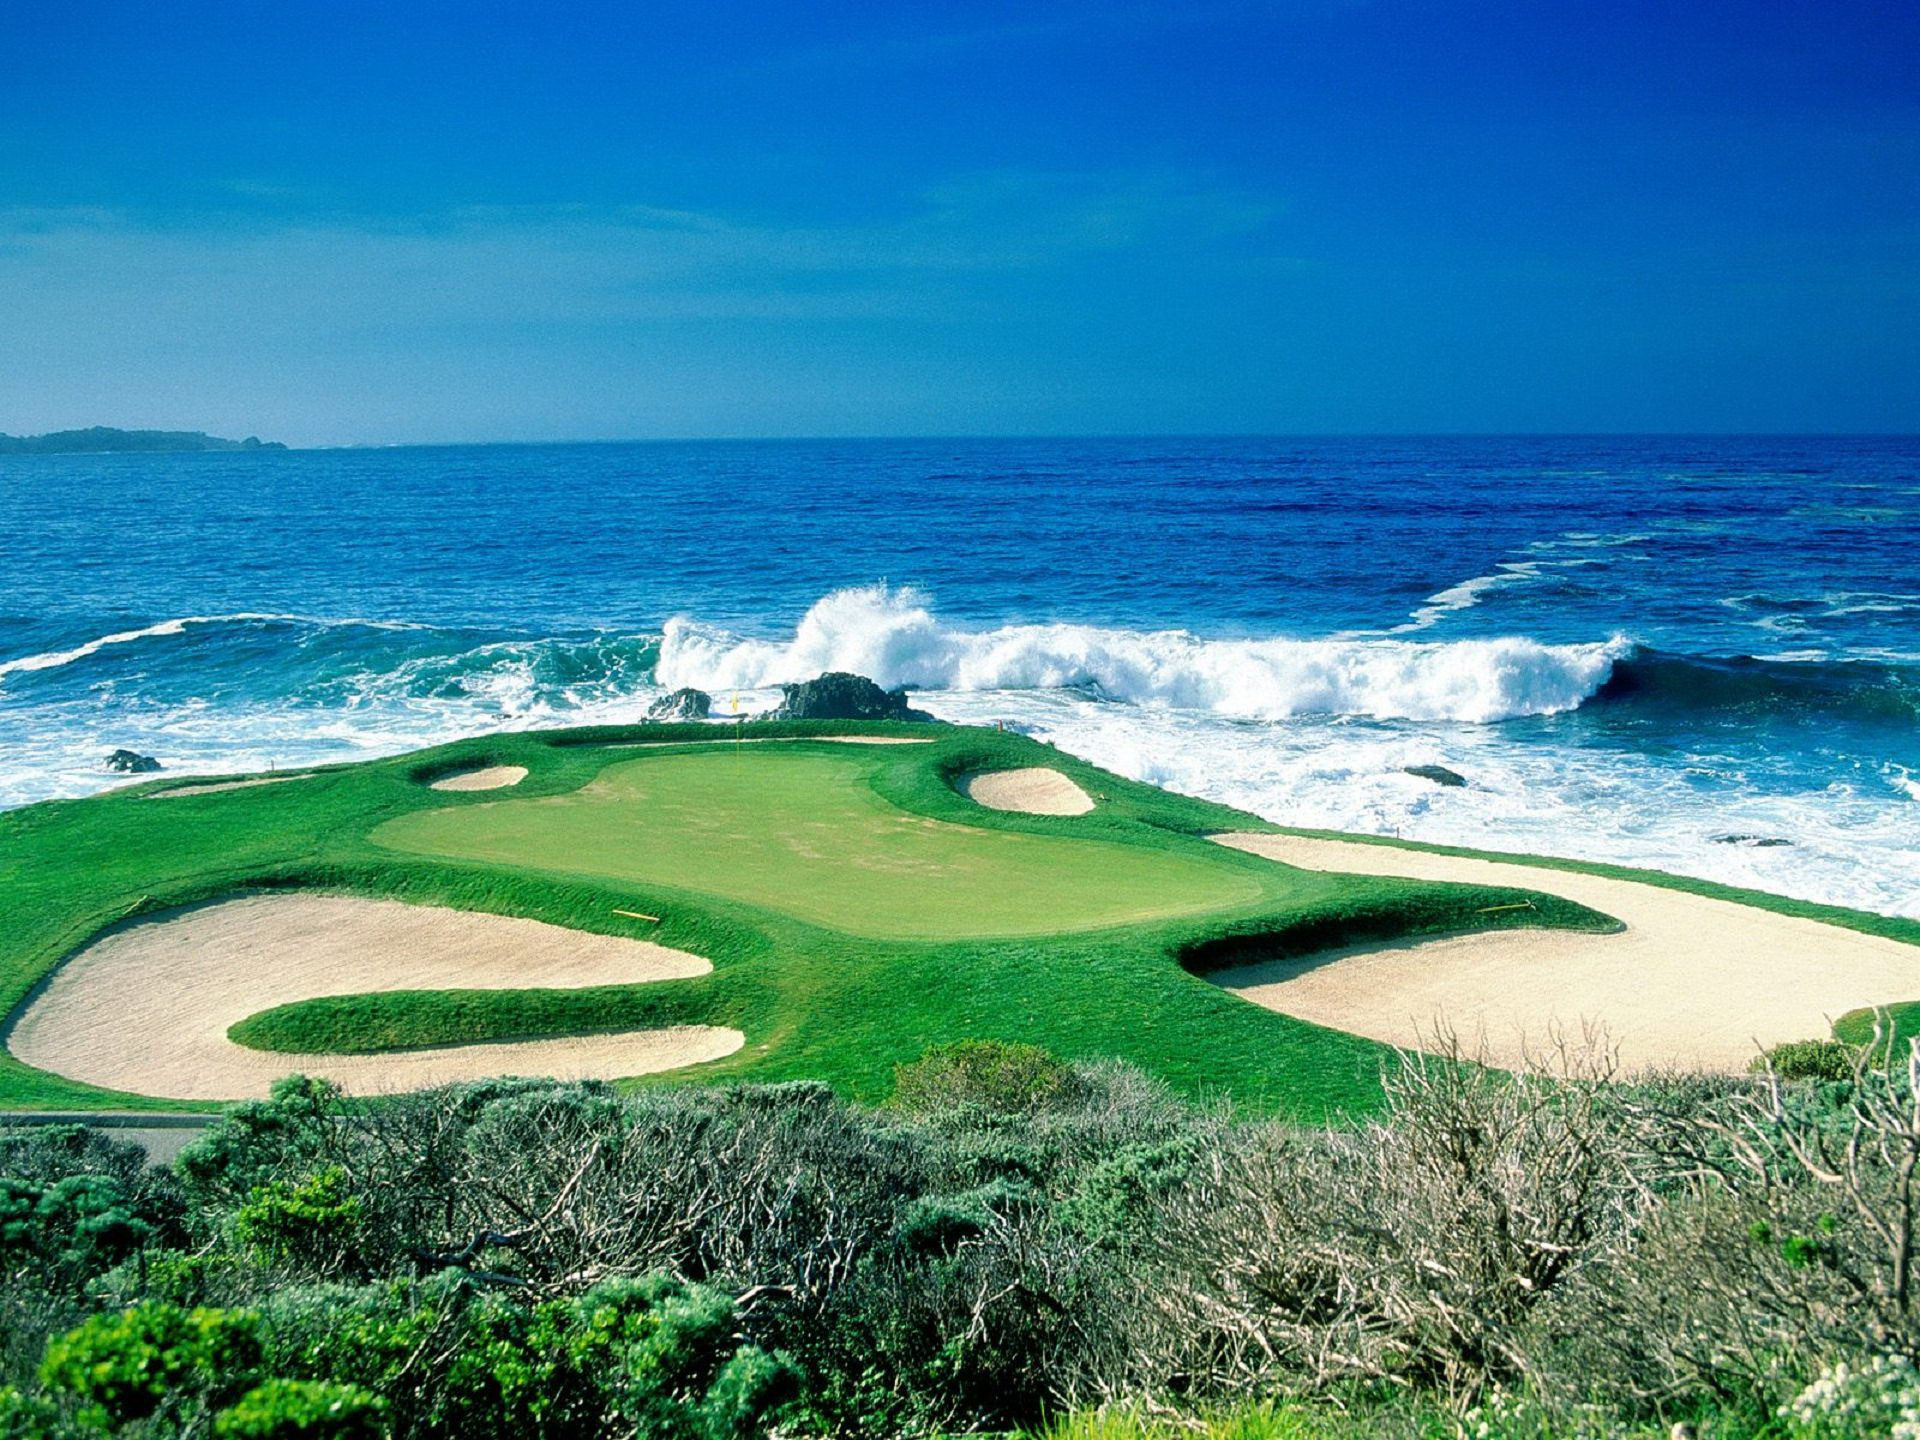 Pebble Beach Golf Links CA United States Full HD Wallpaper And